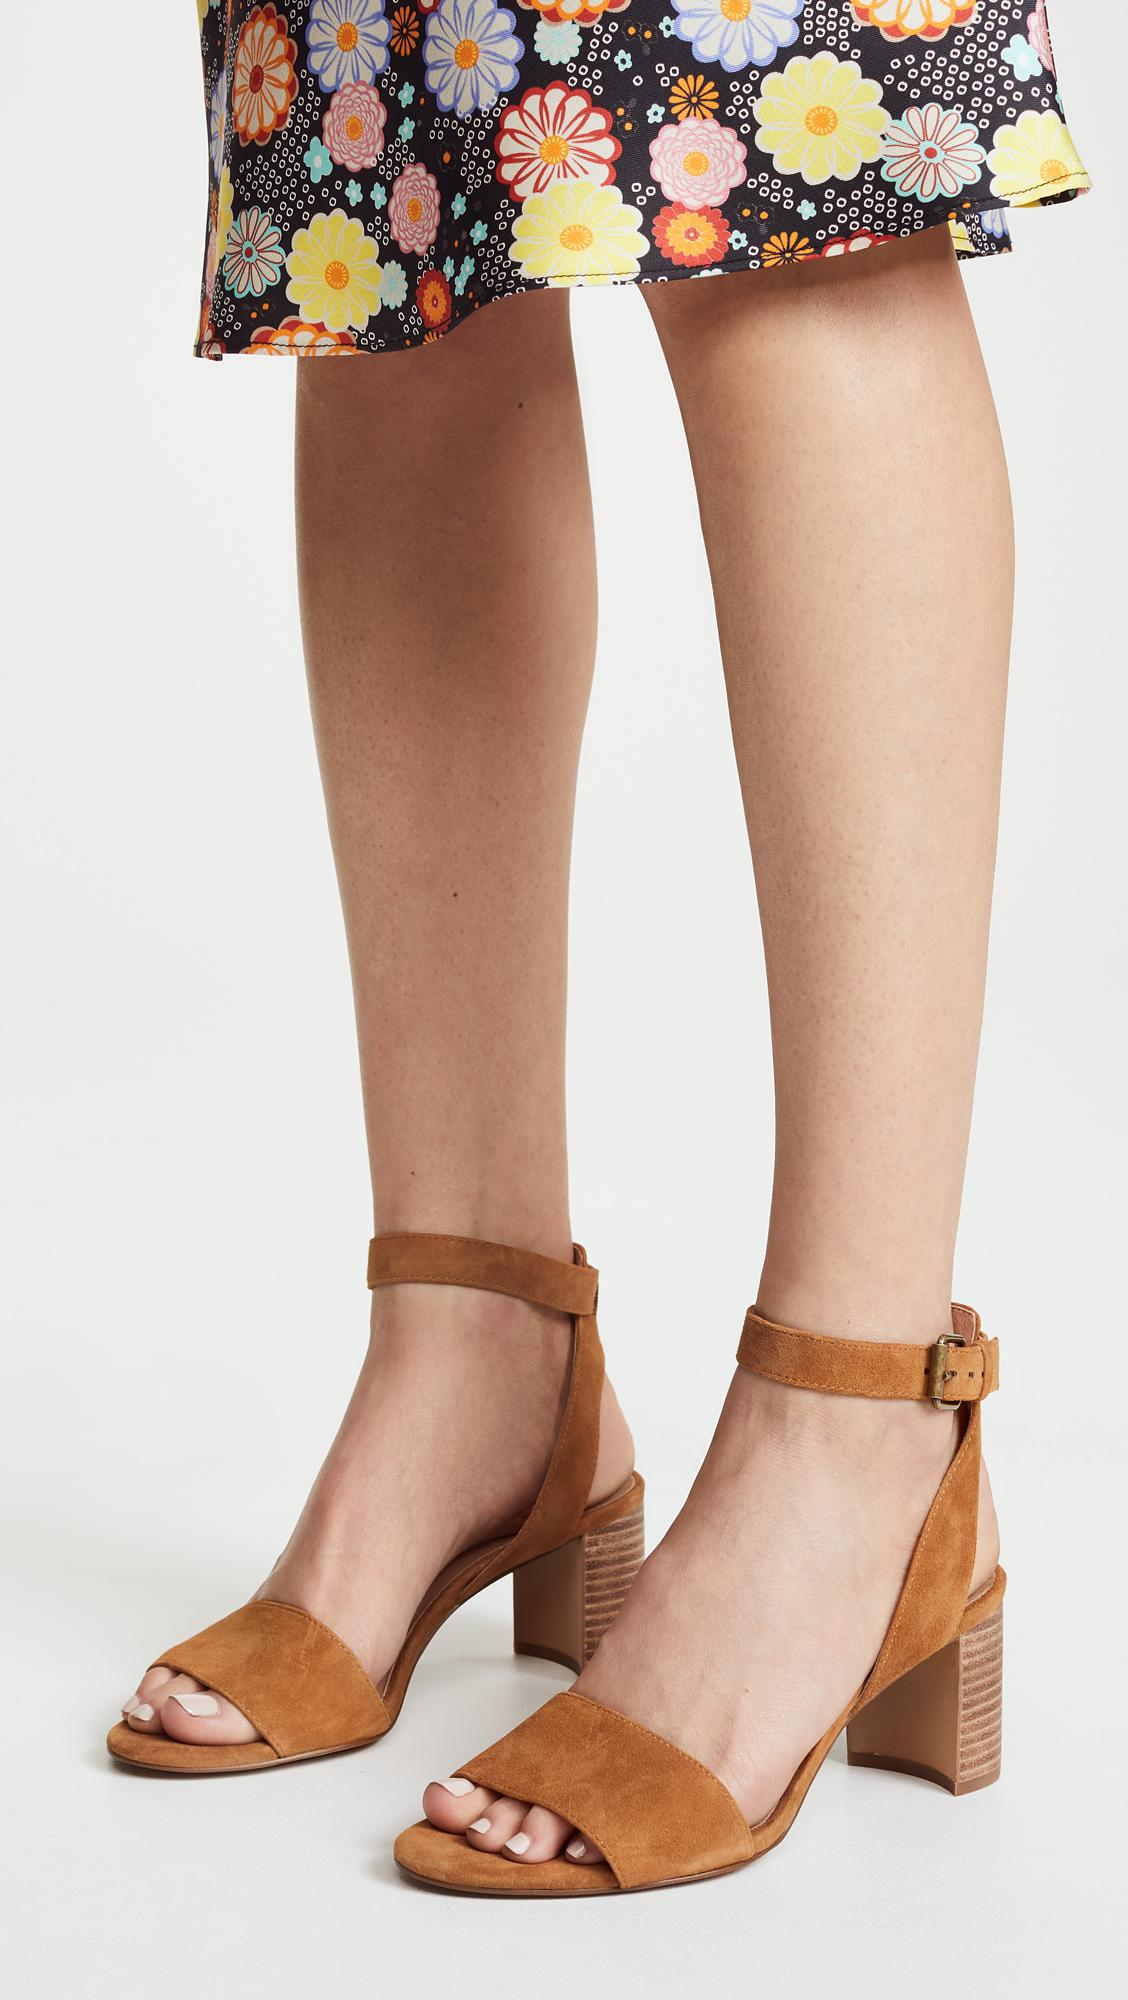 0a4f33af9b5 Madewell The Claudia Sandals in Brown - Lyst